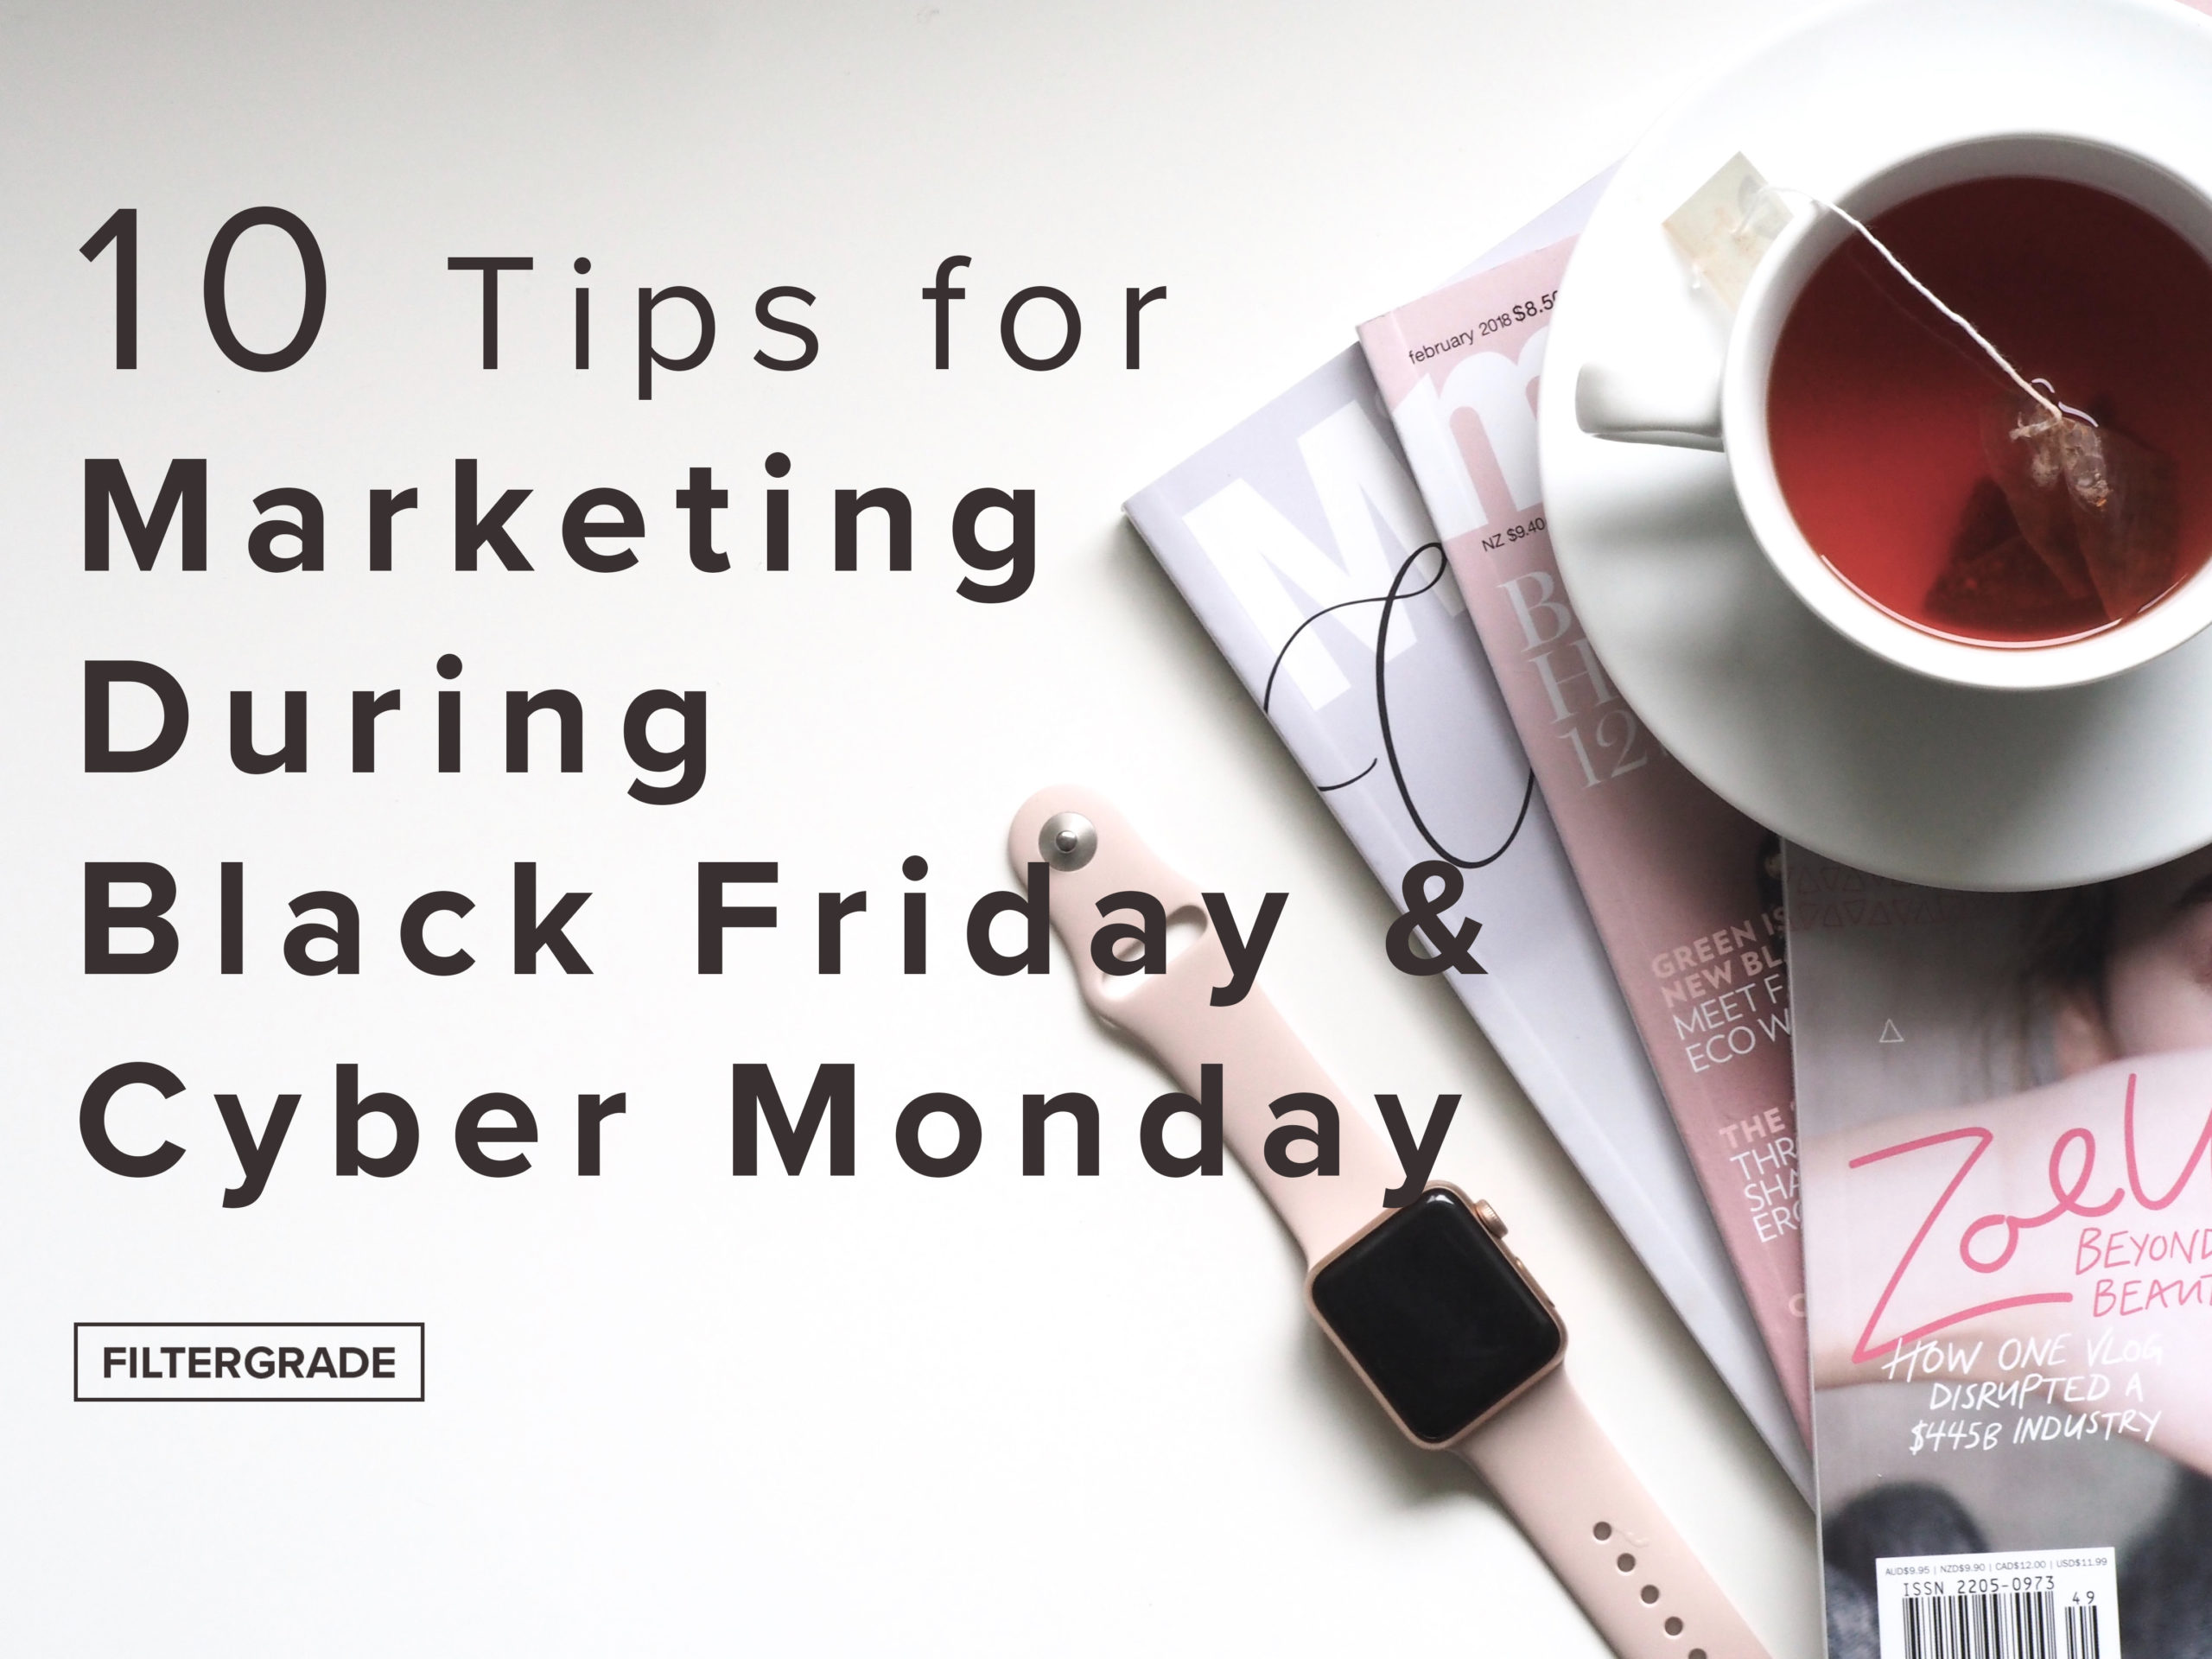 10 Tips For Marketing During Black Friday Cyber Monday Filtergrade